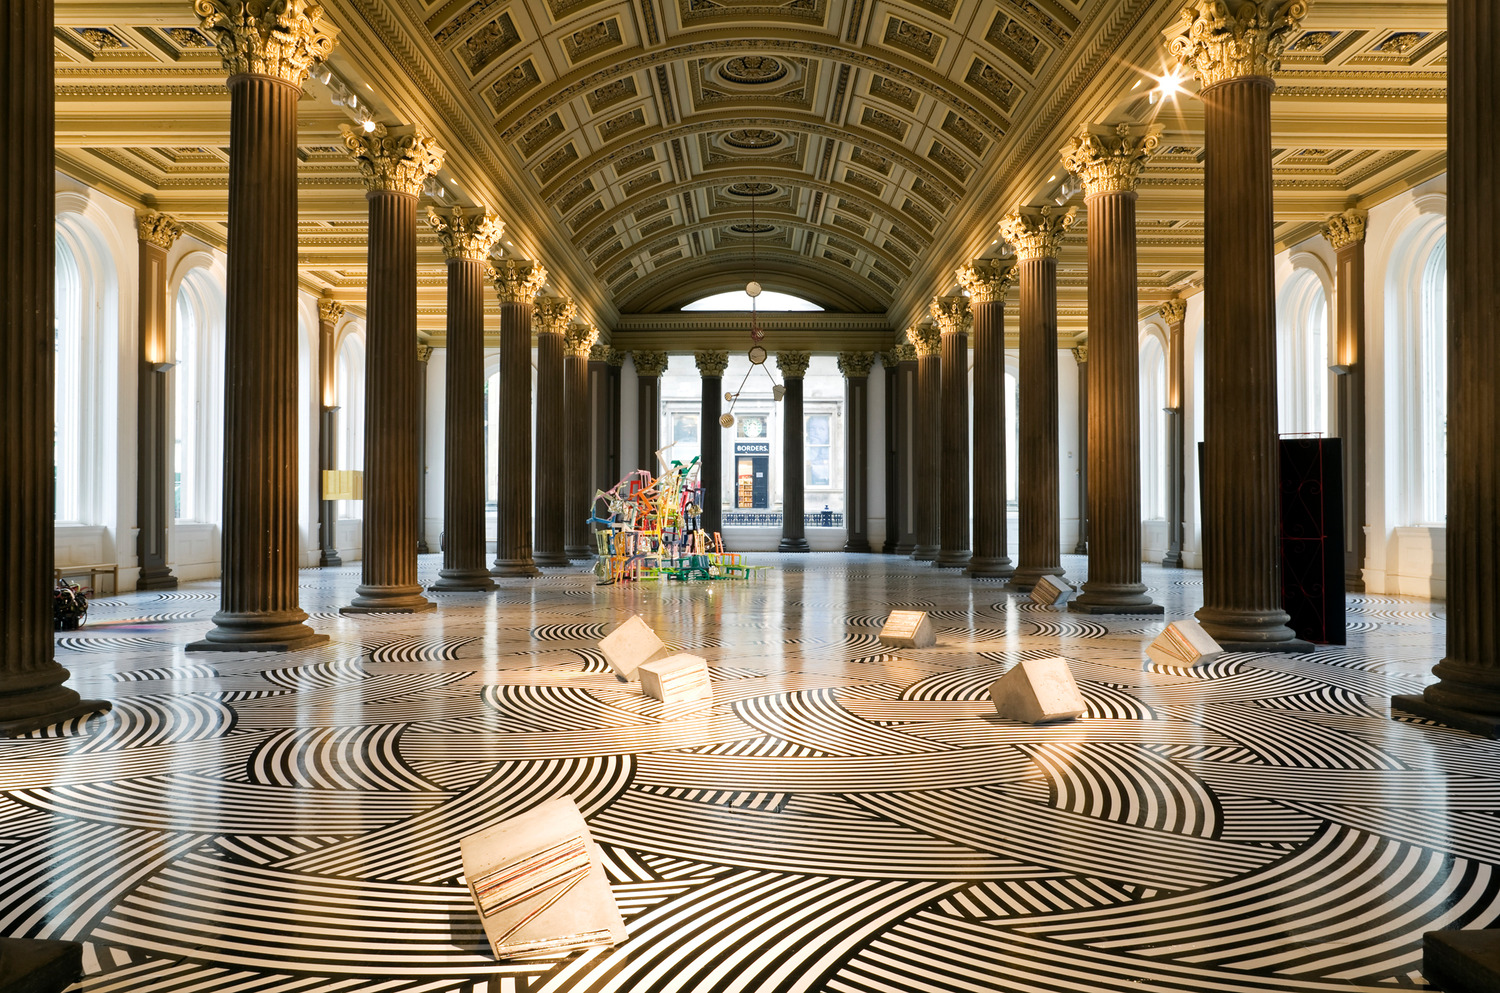 Installation view 'Forever Changes', Gallery of Modern Art, Glasgow, 2008